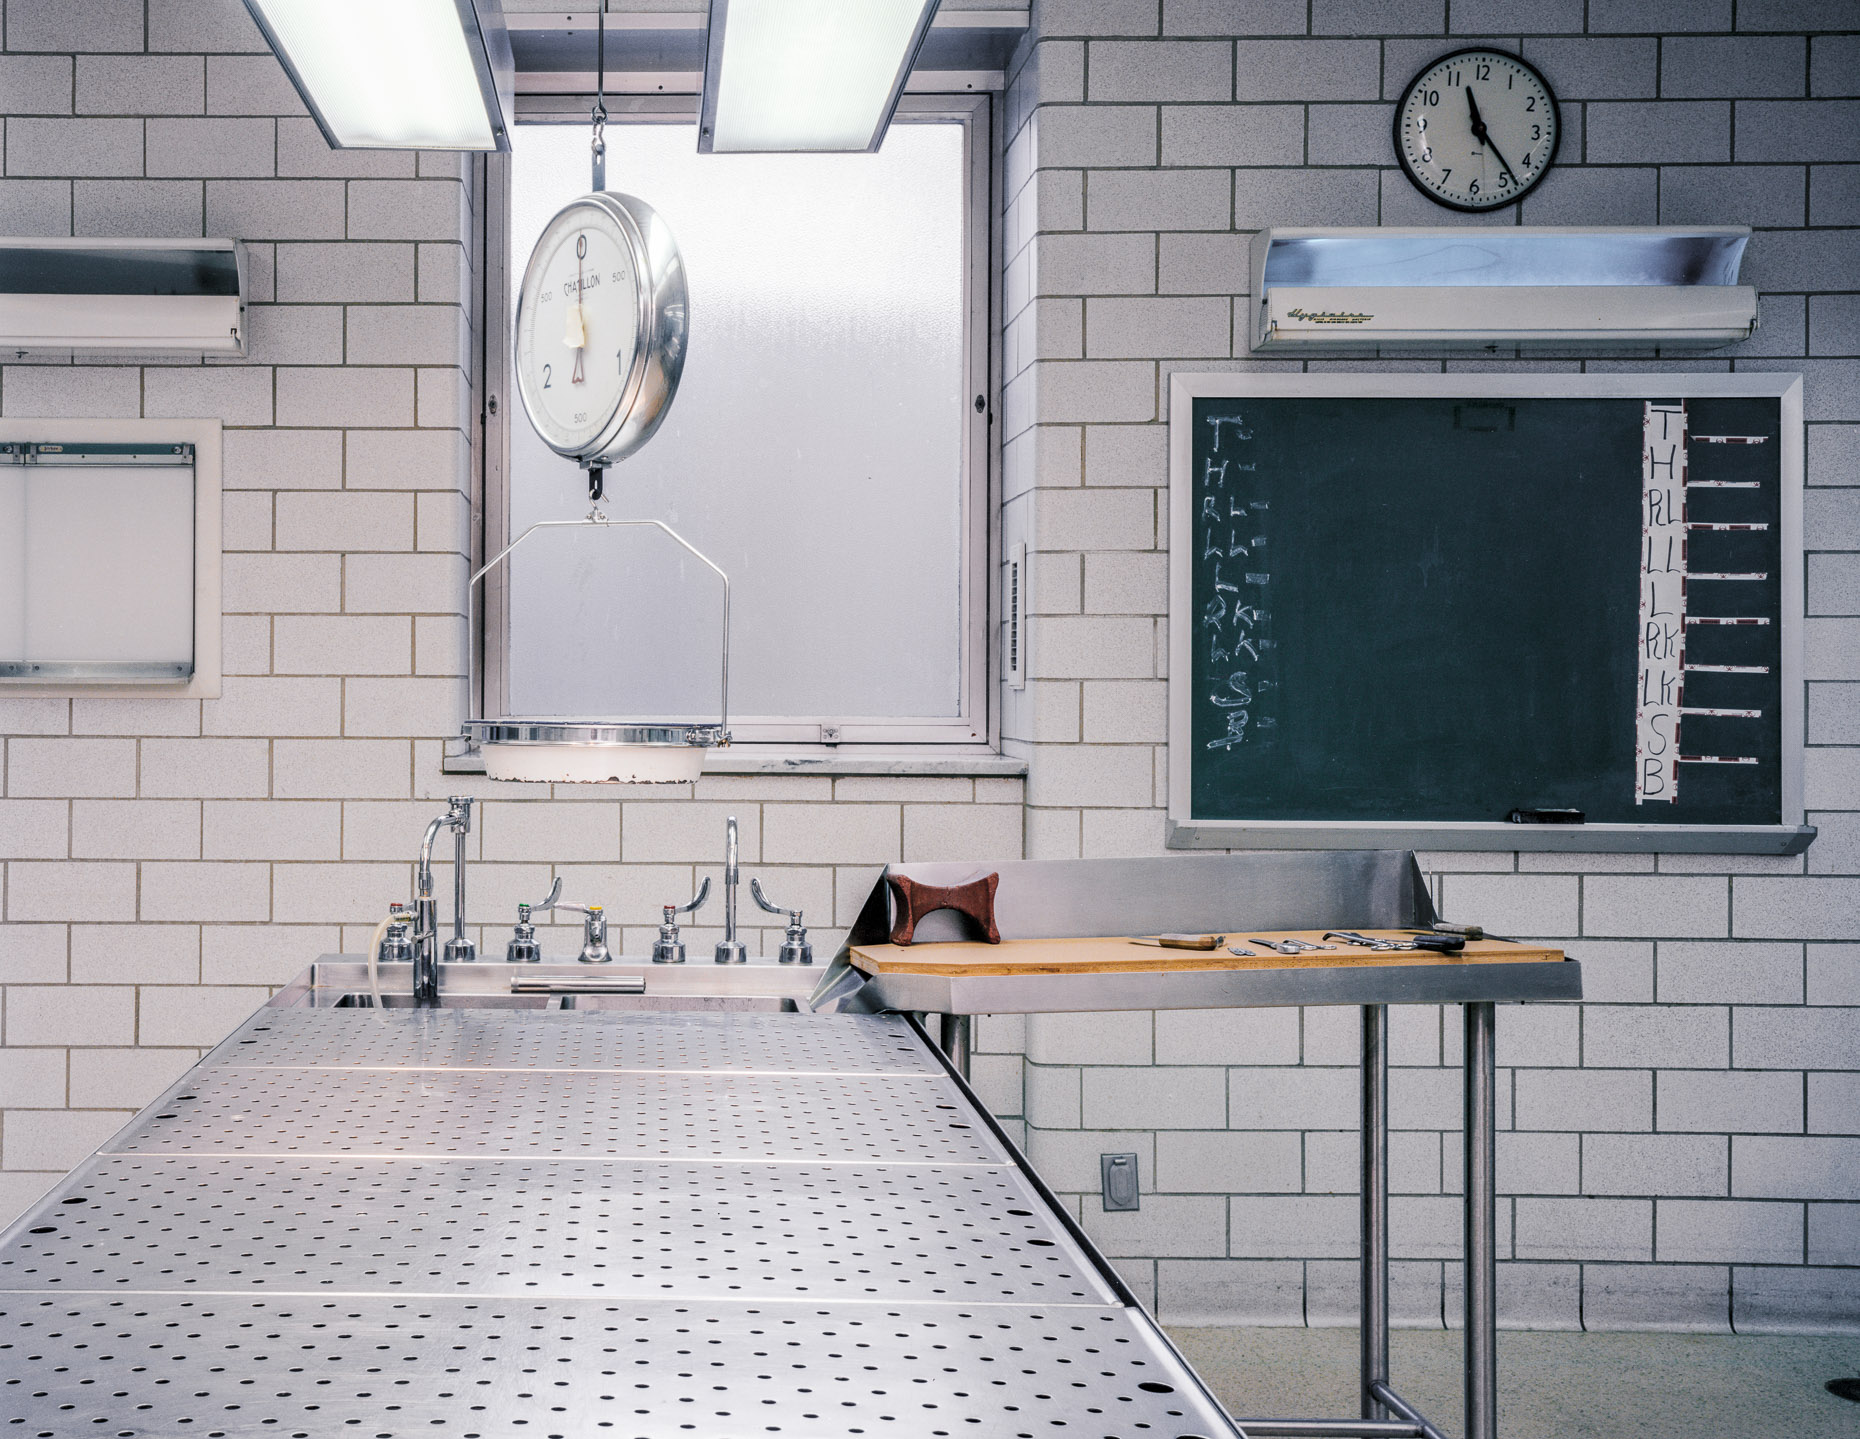 Dissection Table, NYC Morgue